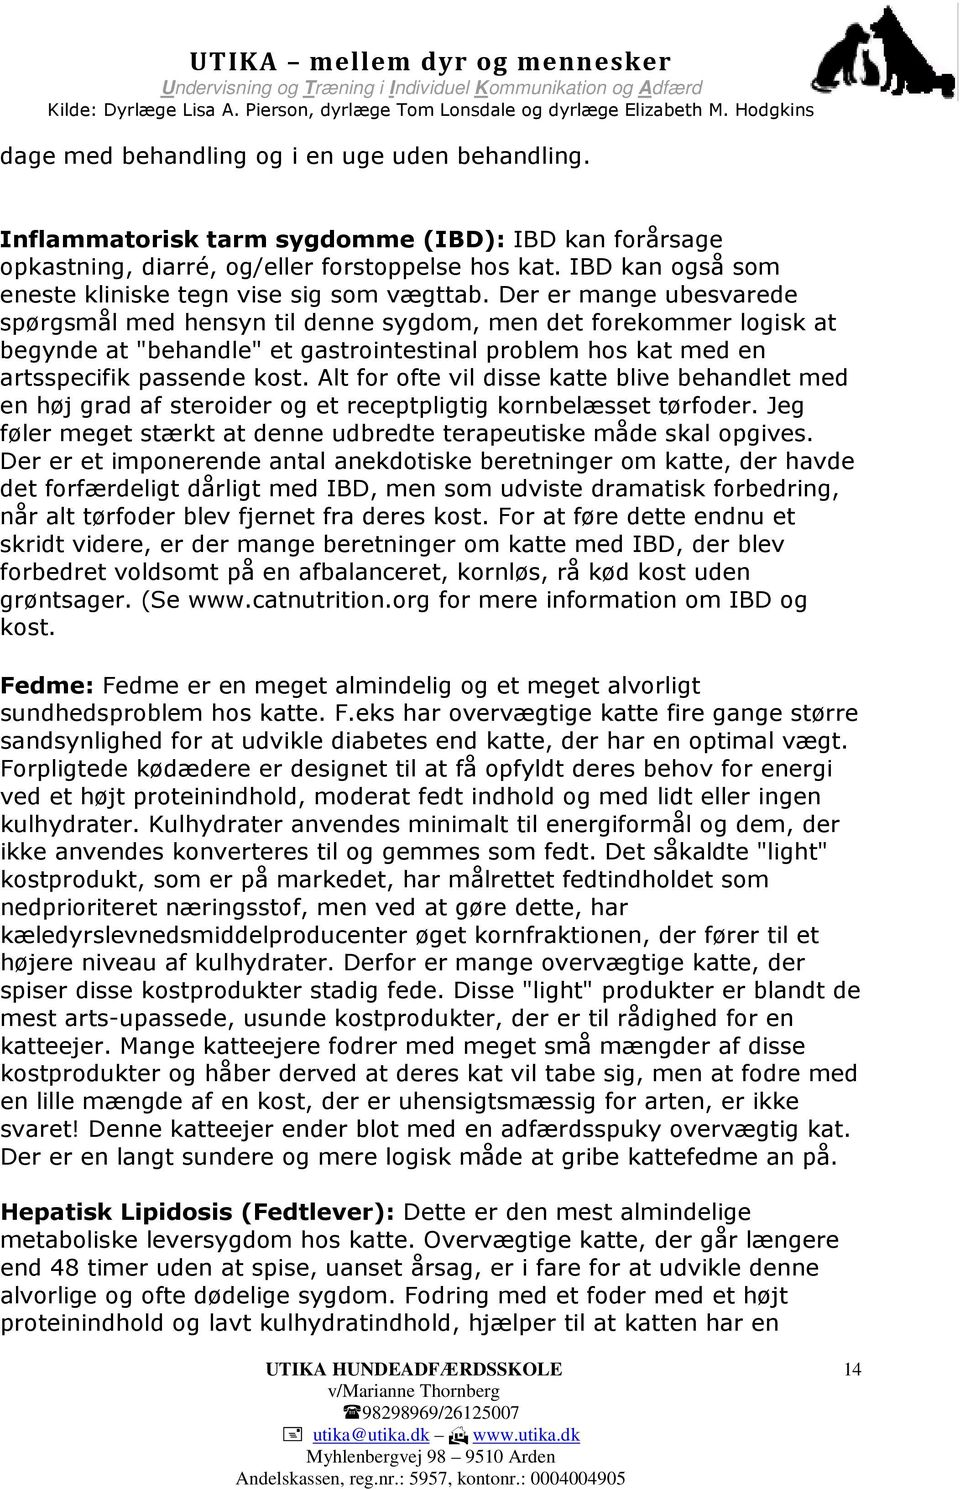 "Der er mange ubesvarede spørgsmål med hensyn til denne sygdom, men det forekommer logisk at begynde at ""behandle"" et gastrointestinal problem hos kat med en artsspecifik passende kost."